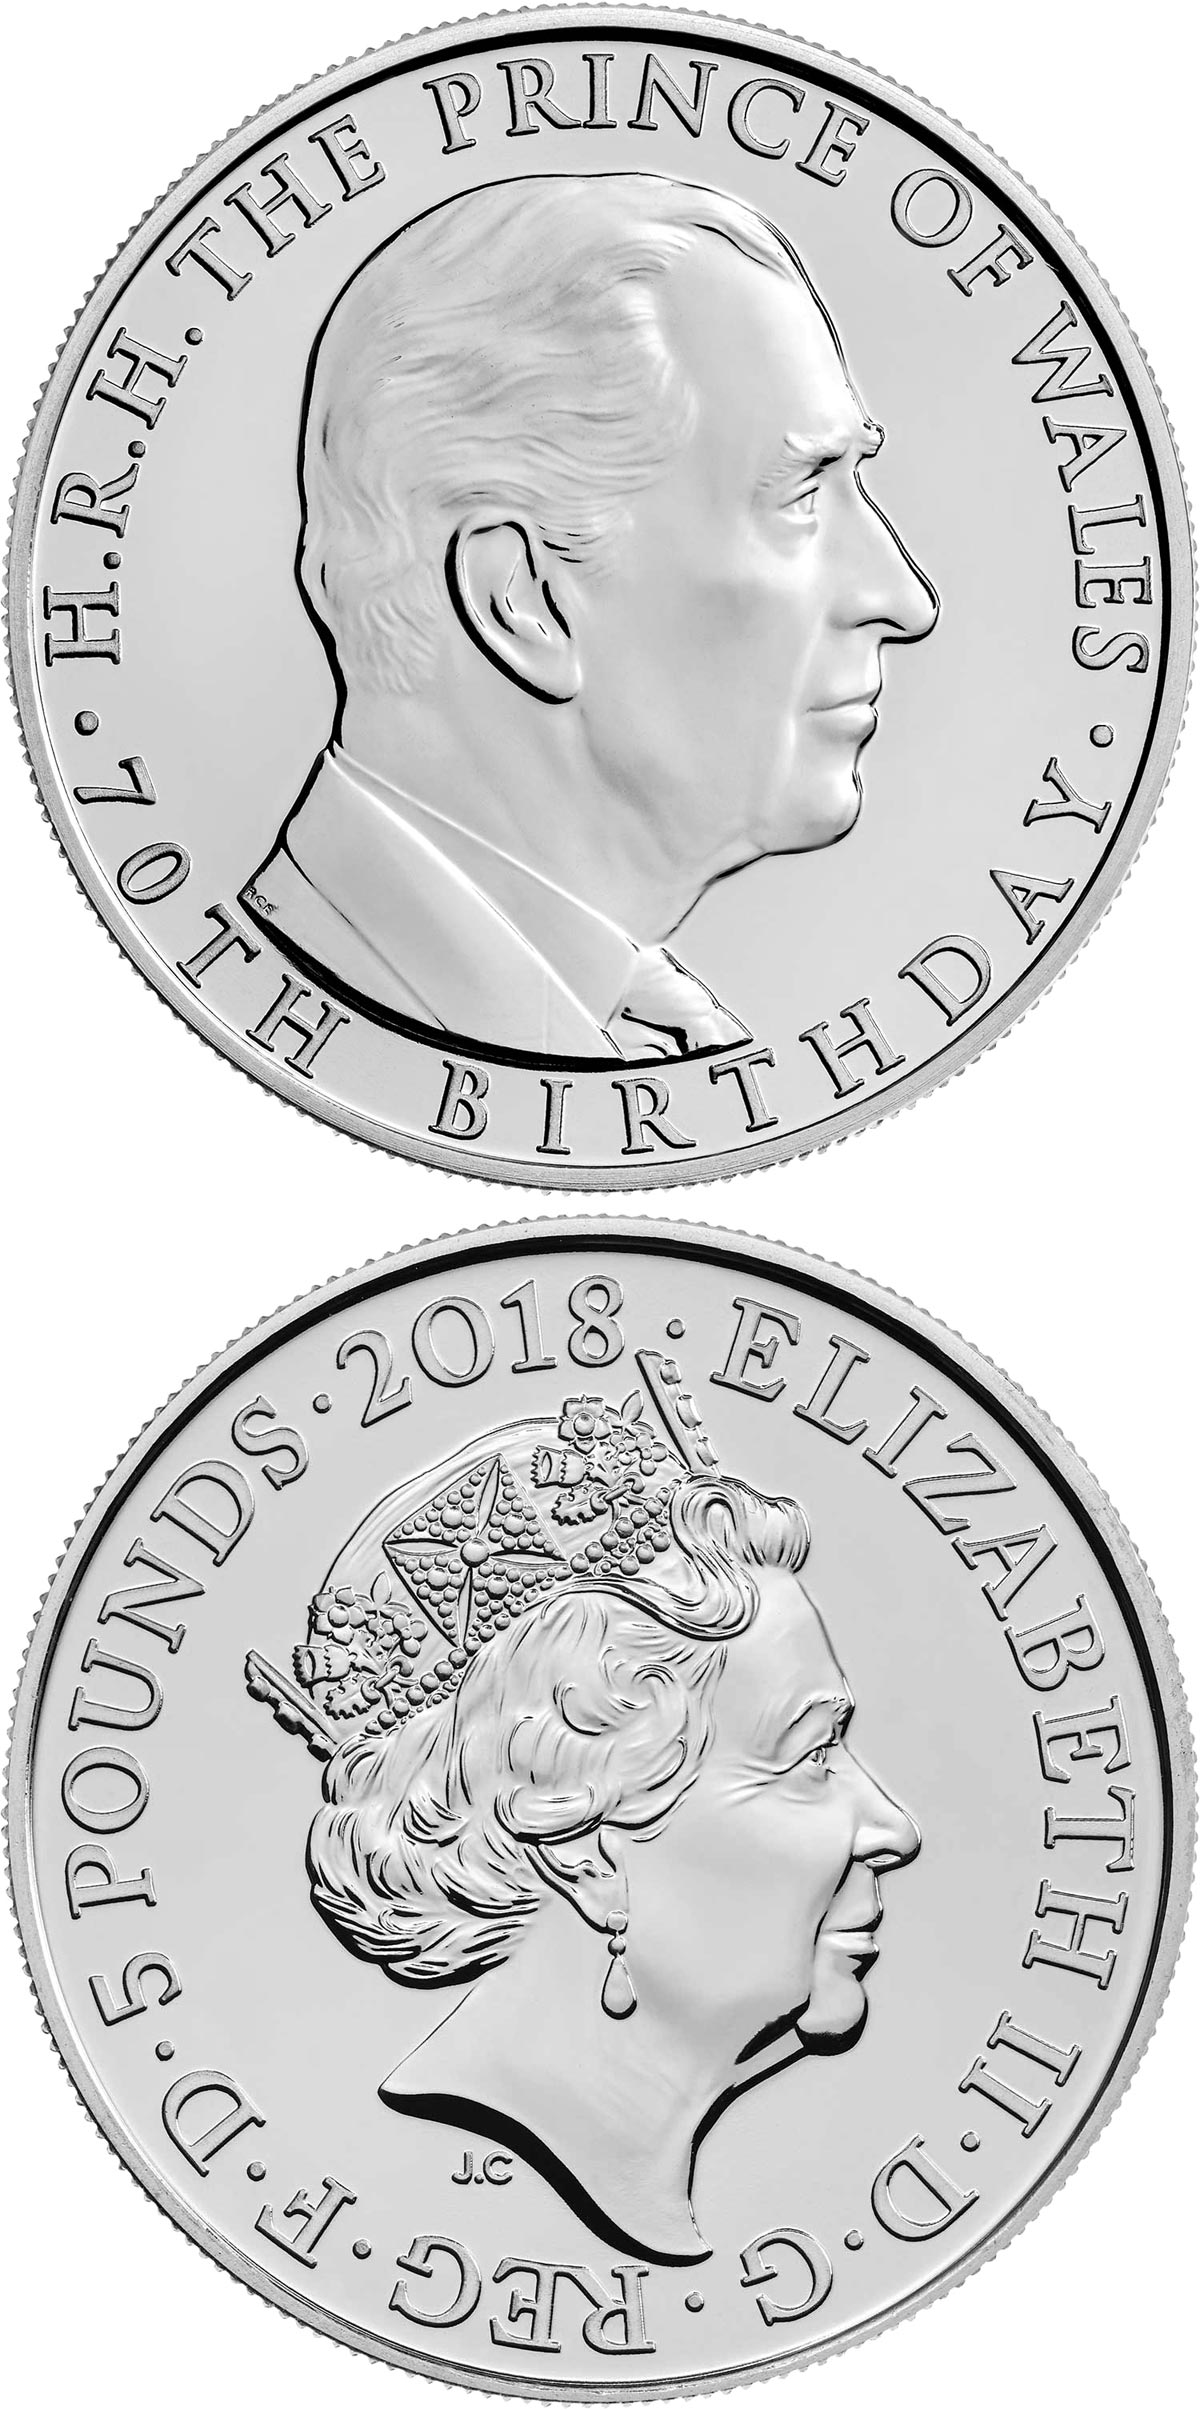 Image of 5 pounds coin - The 70th Birthday of the Prince of Wales | United Kingdom 2018.  The Copper–Nickel (CuNi) coin is of Proof, BU quality.